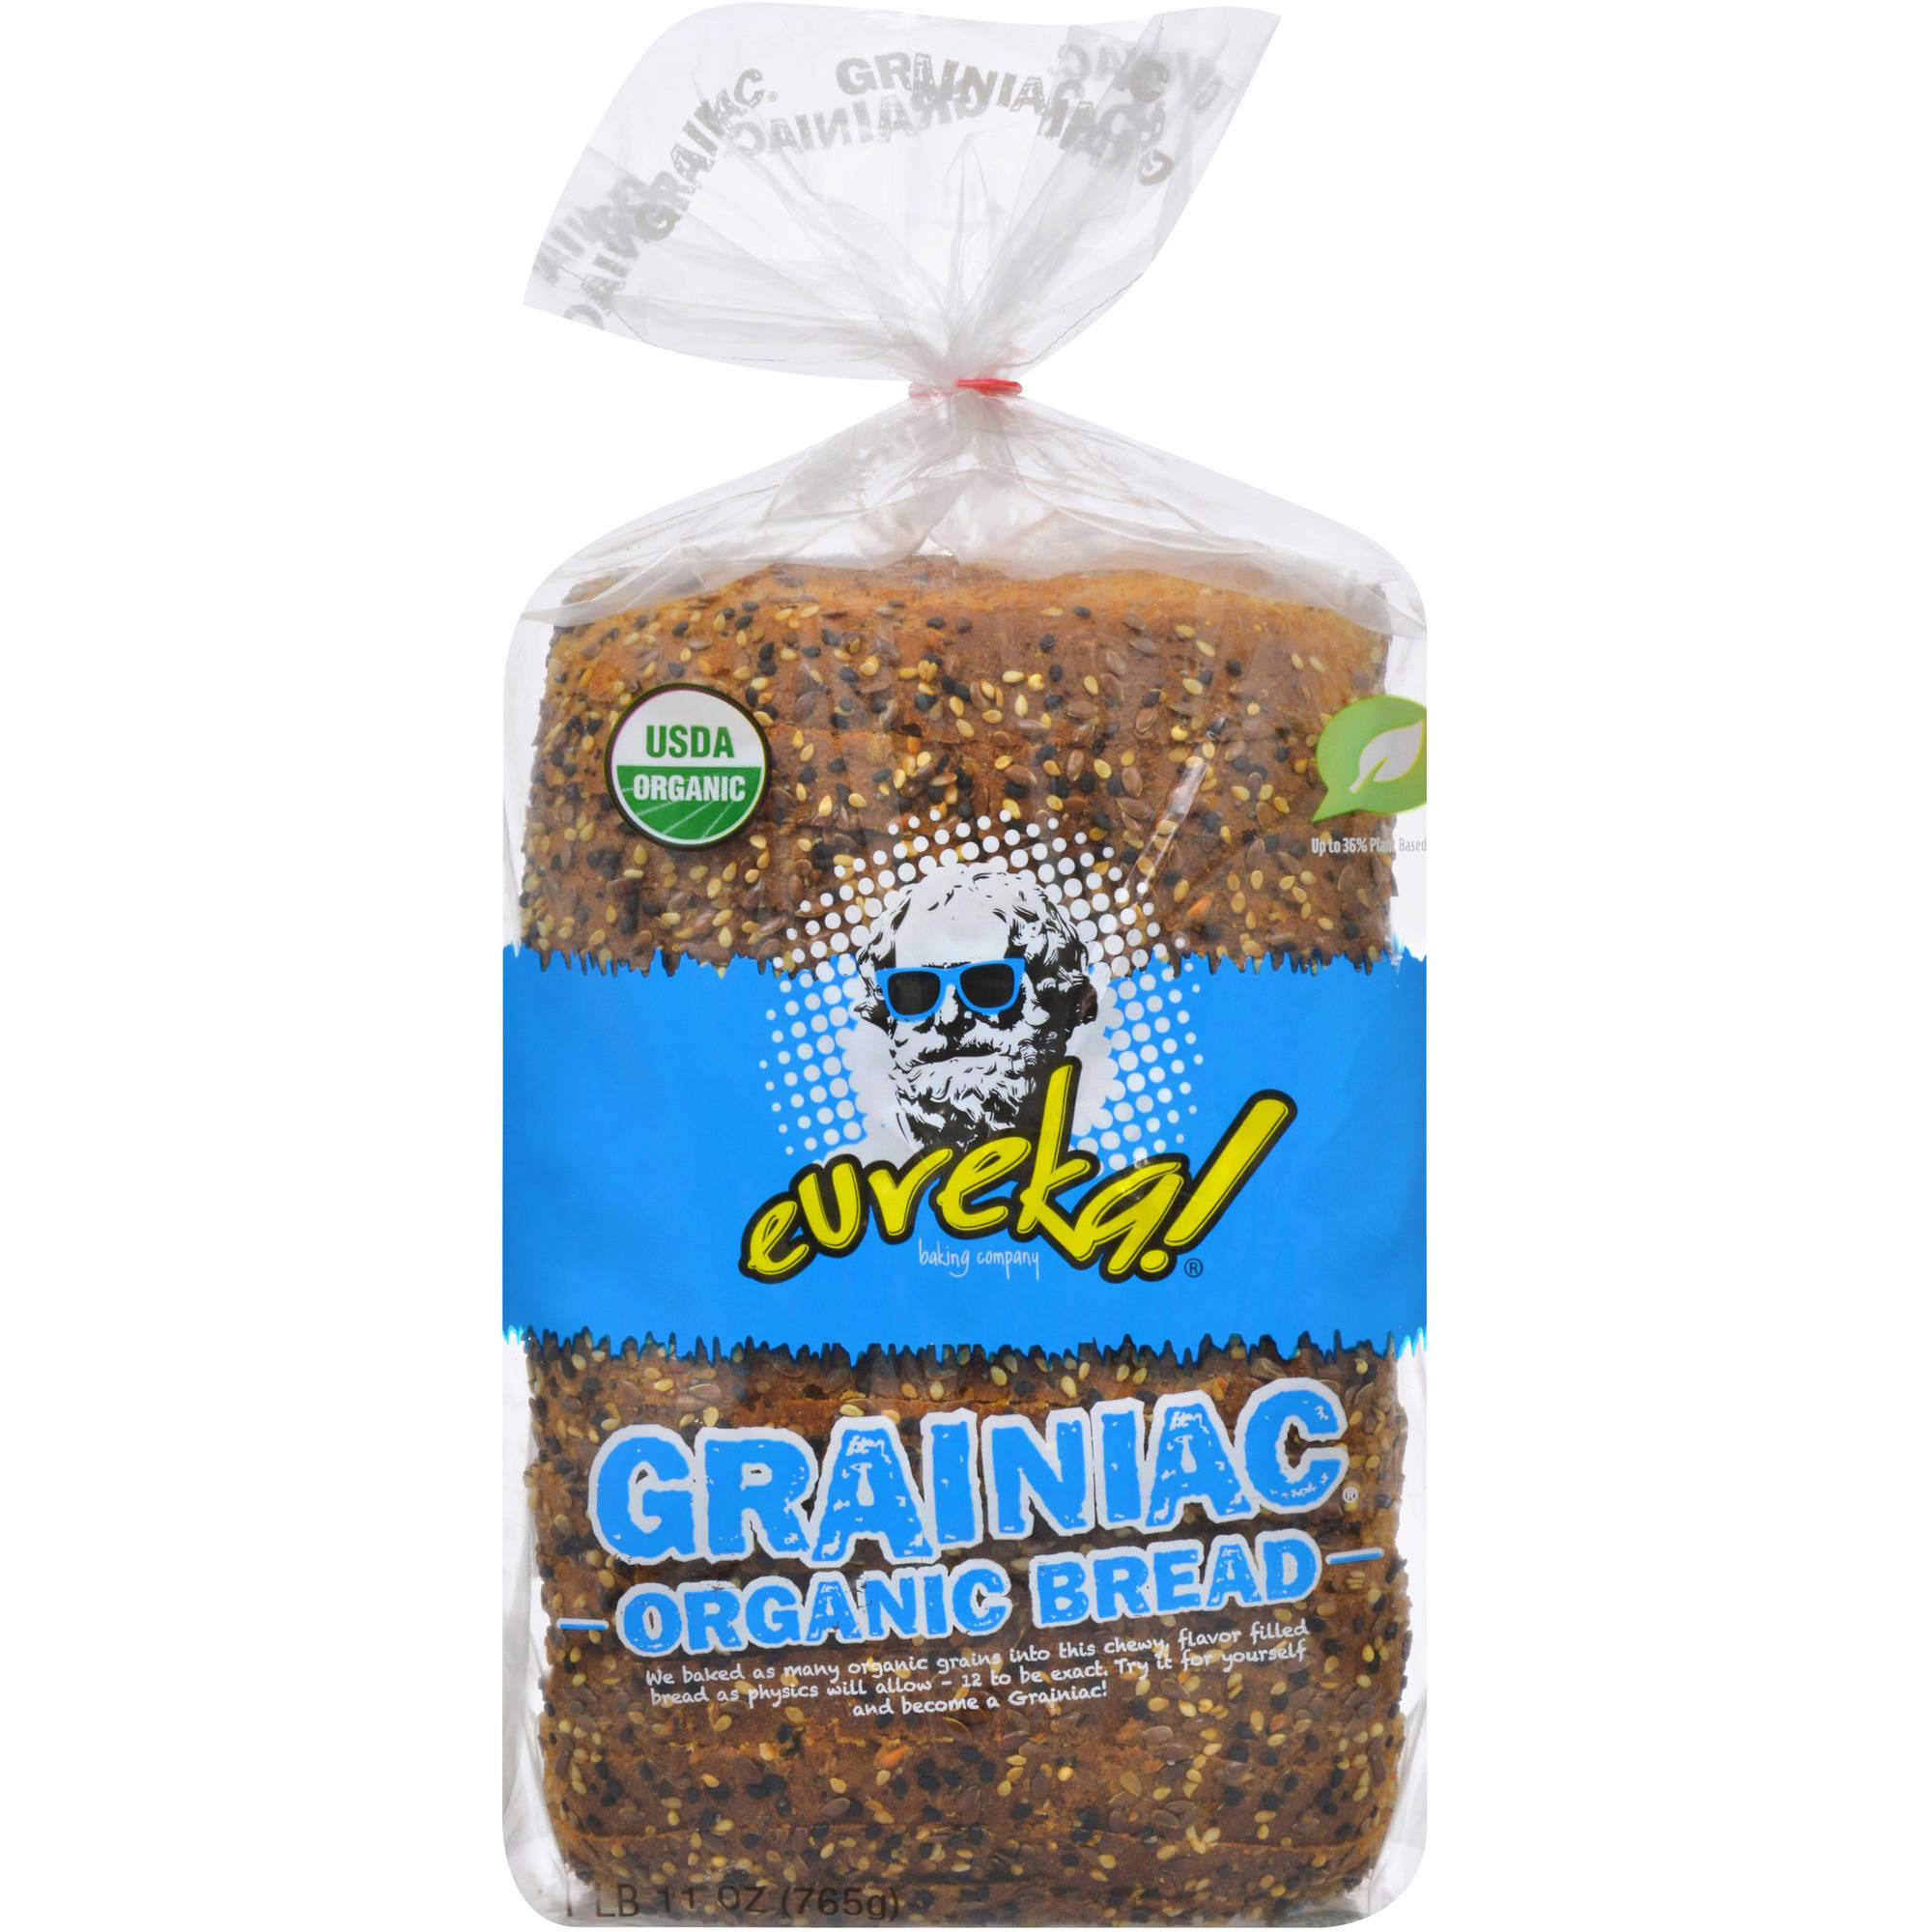 eureka! Grainiac Bread, 27 oz